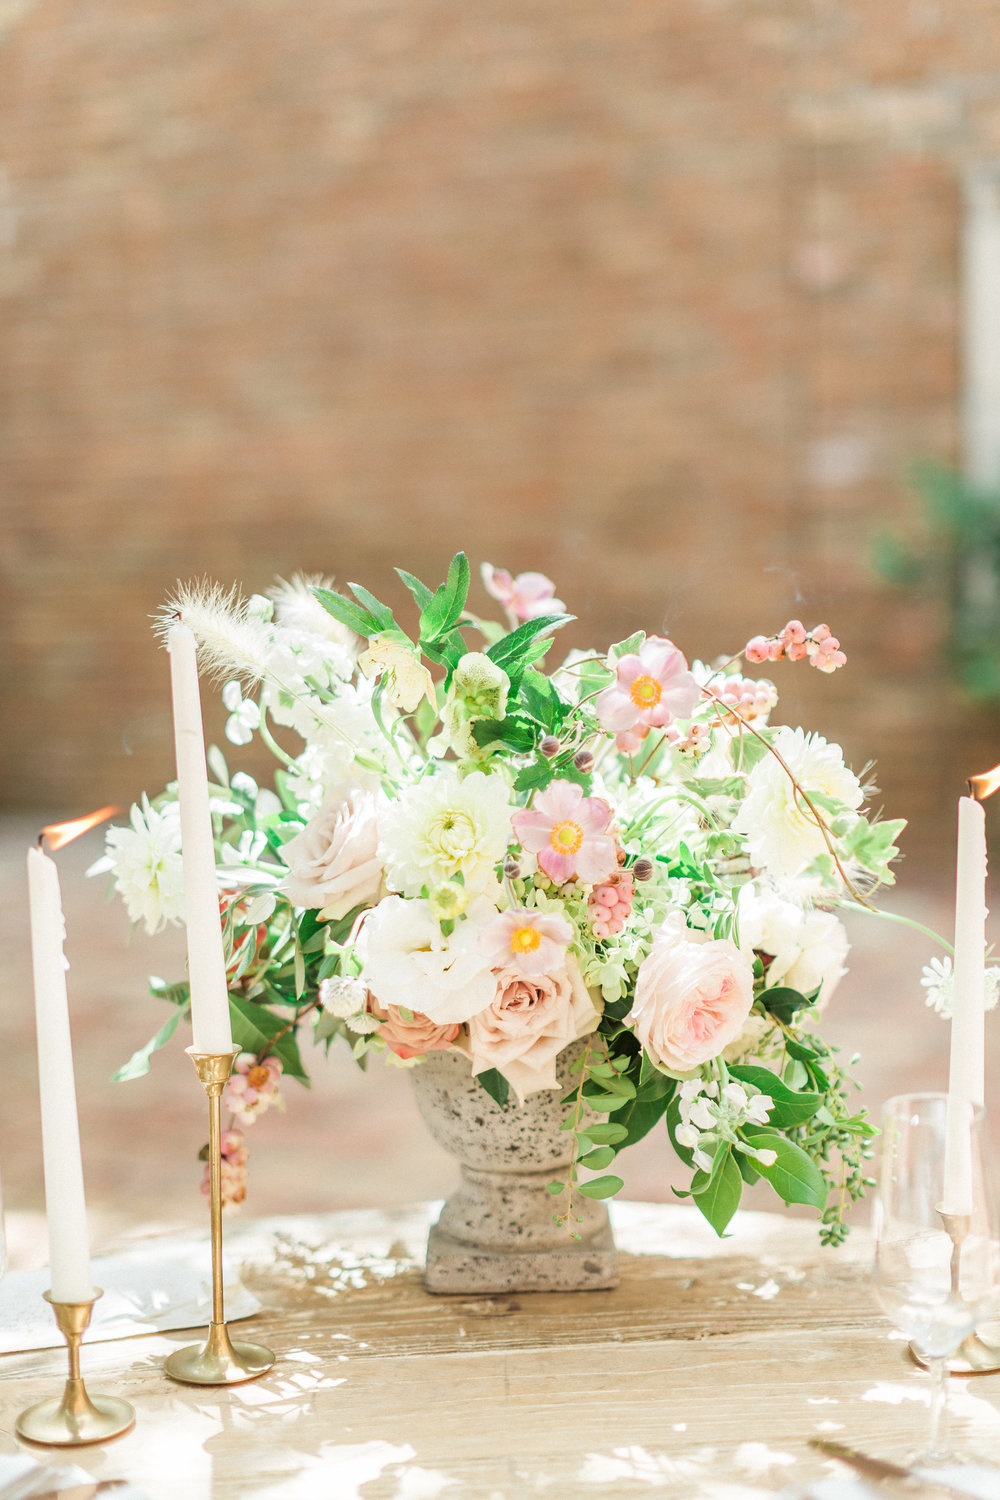 whimsical+centerpiece+lovely+soiree+floral+designs+at+the+gallery+houston+texas